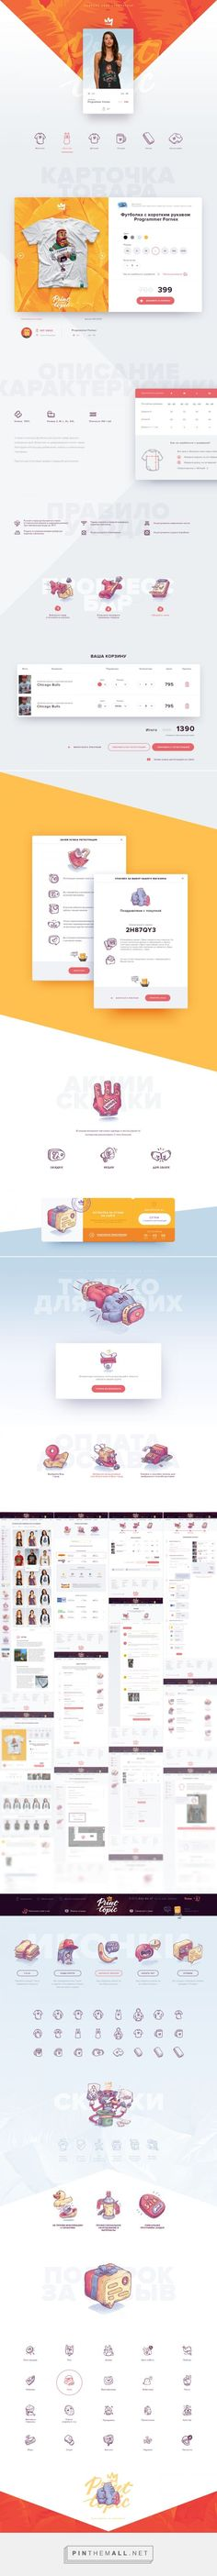 Print Topic Shop | Web design | Ui | illustration on Behance - created via https://pinthemall.net. If you like UX, design, or design thinking, check out theuxblog.com podcast https://itunes.apple.com/us/podcast/ux-blog-user-experience-design/id1127946001?mt=2